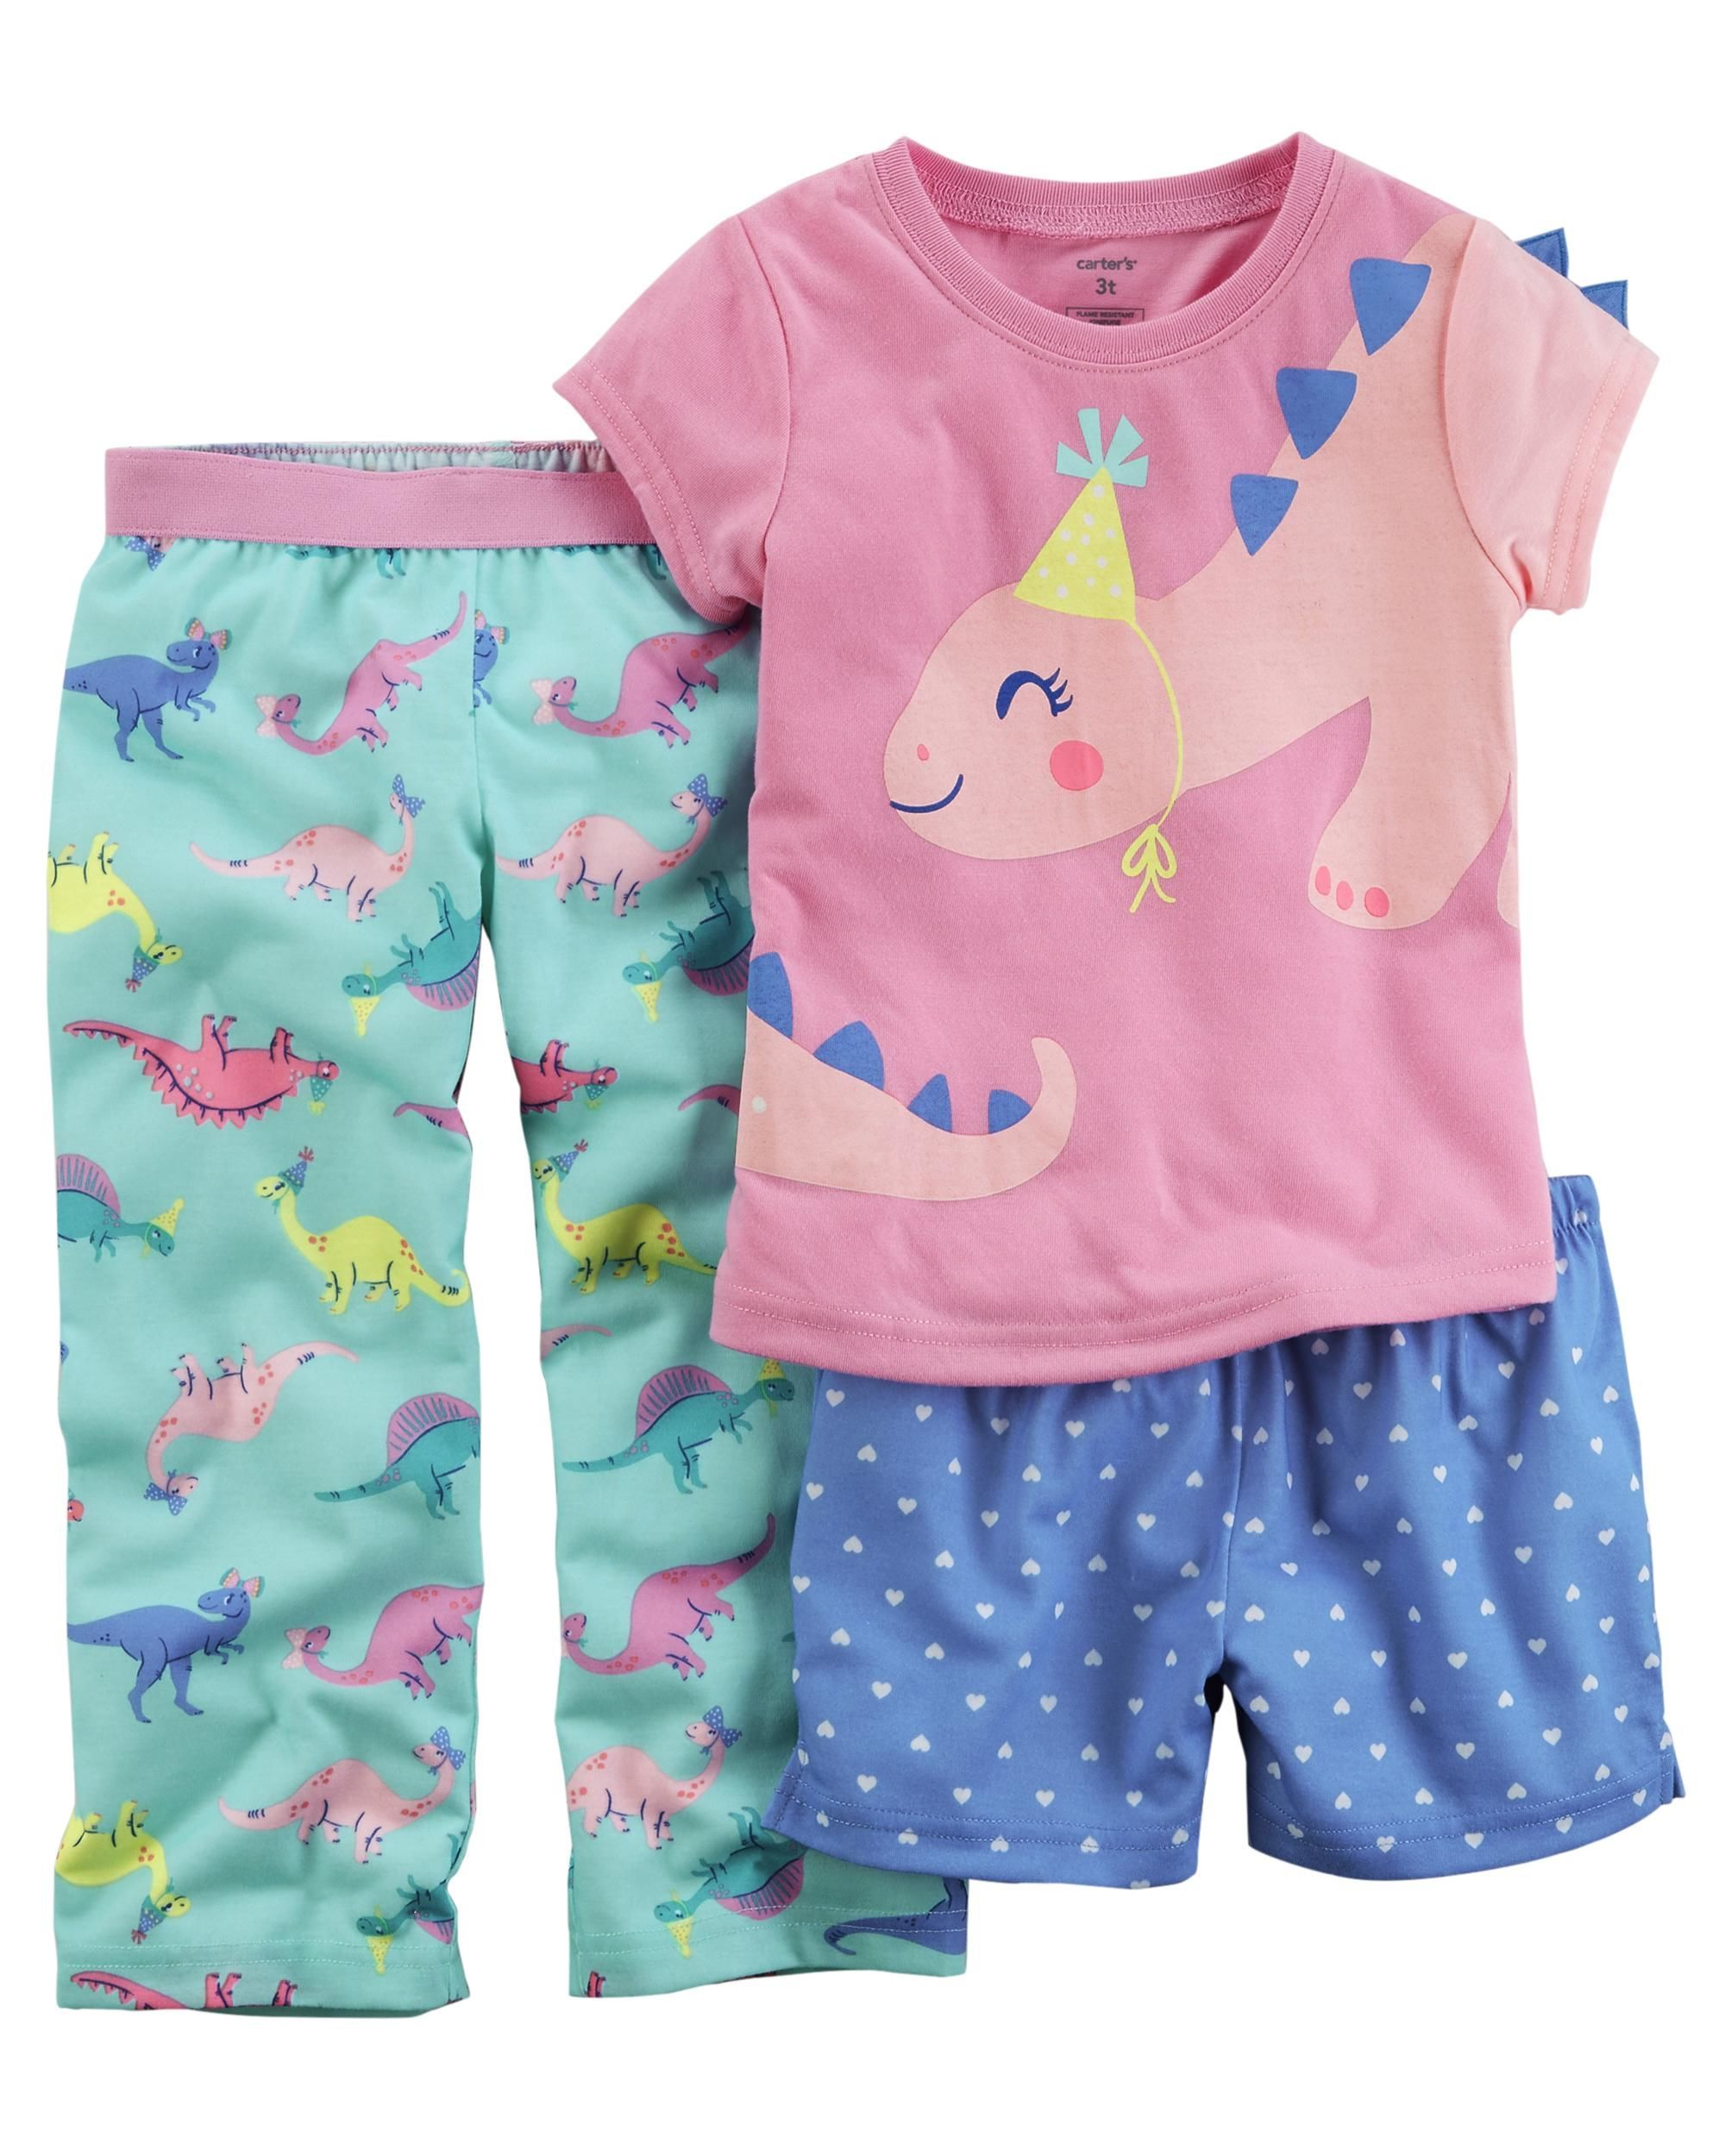 53dfcdf378b5 Toddler Girl 3-Piece Dinosaur Jersey PJs from Carters.com. Shop ...